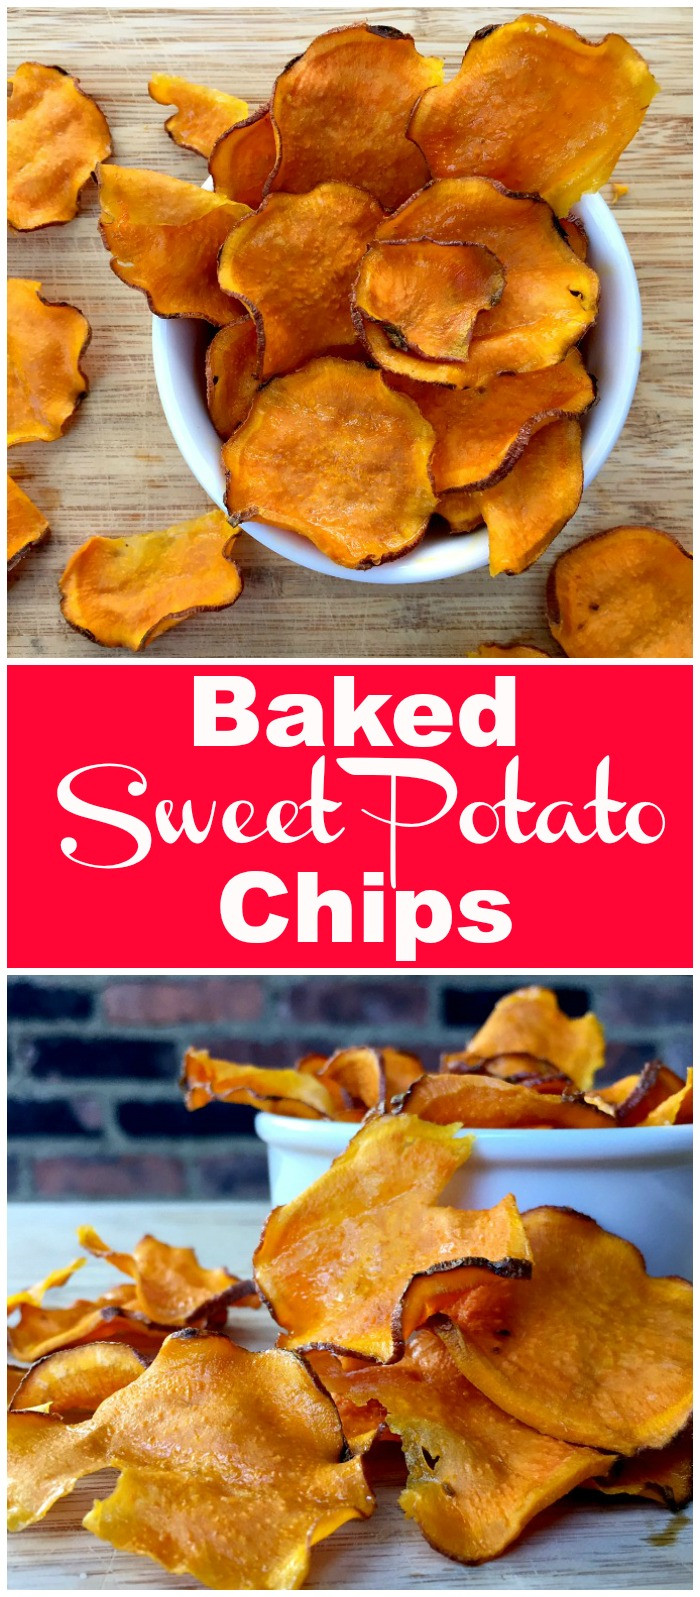 How To Make Potato Chips In The Oven  how to make crunchy potato chips in the oven